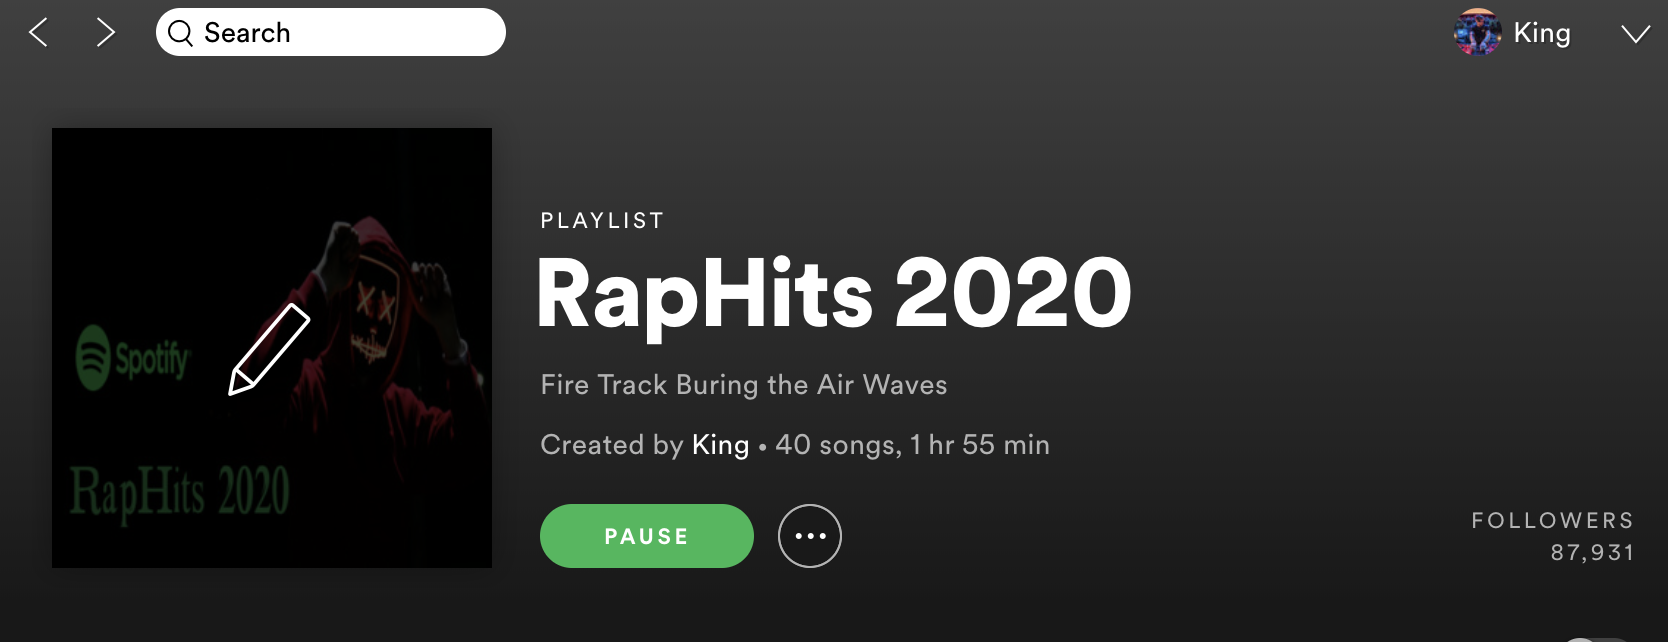 RapHits 2020 Playlist Over 11,500 Fans add song now